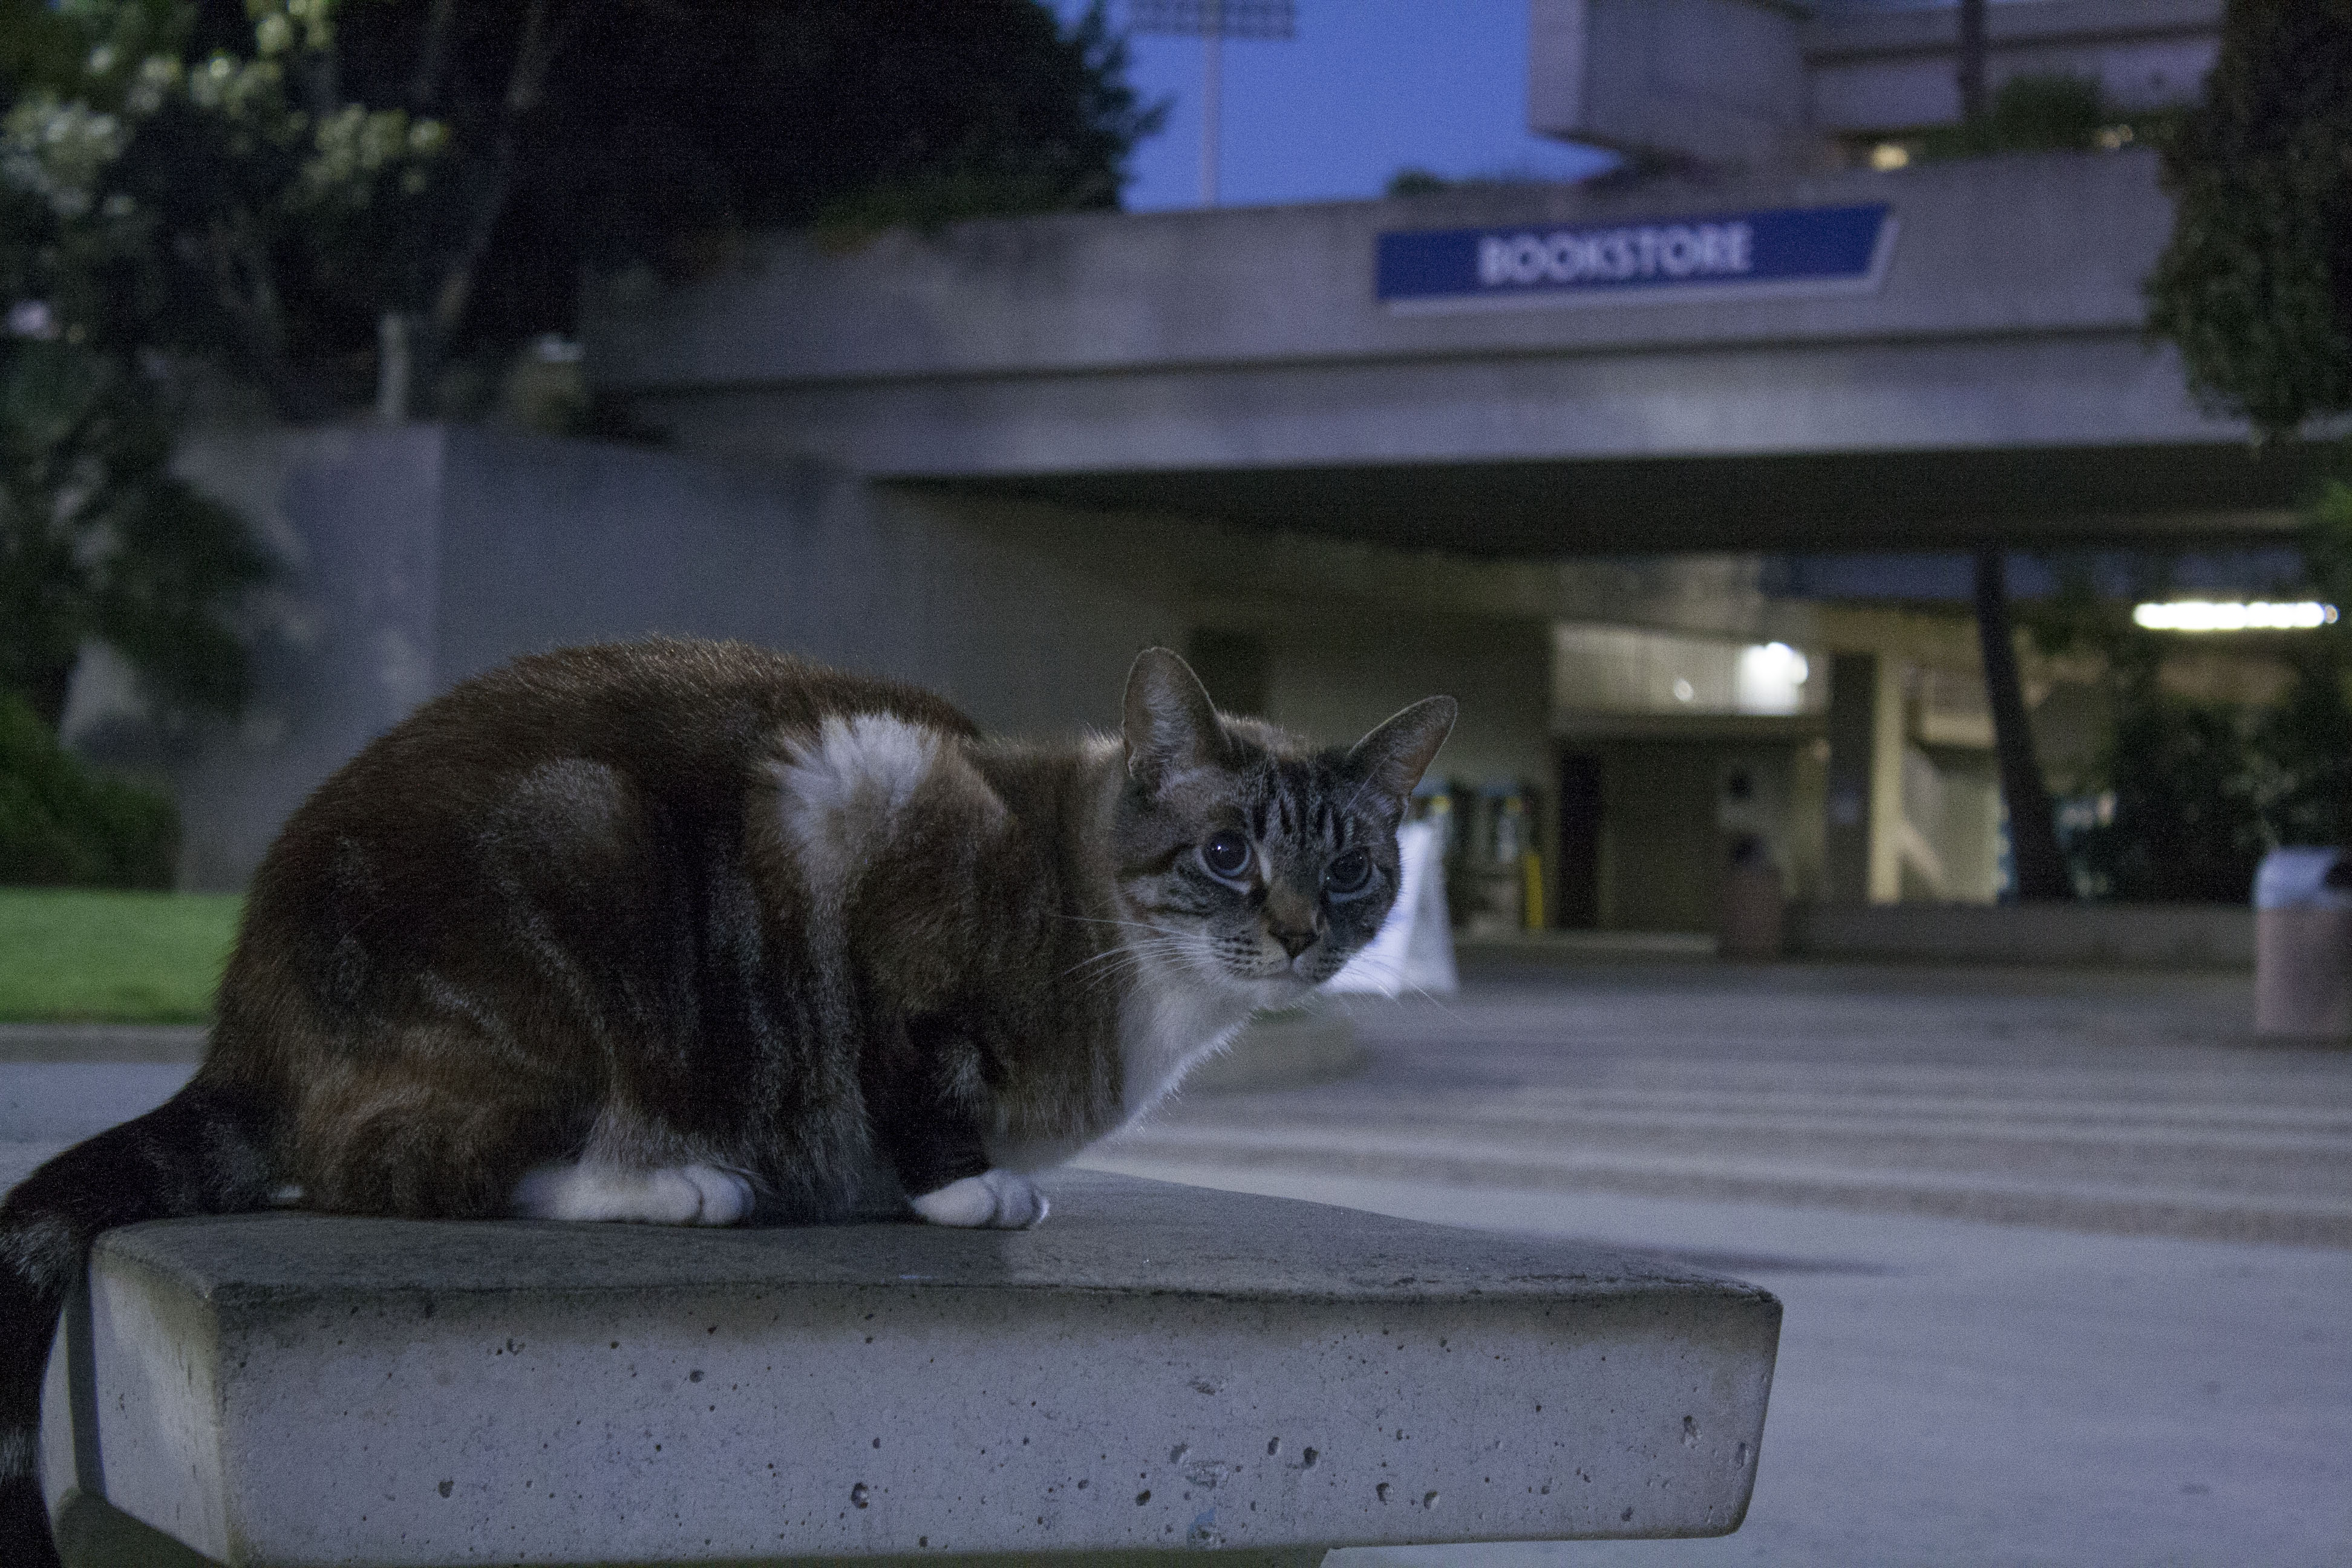 A look behind the 'Cats of El Camino'